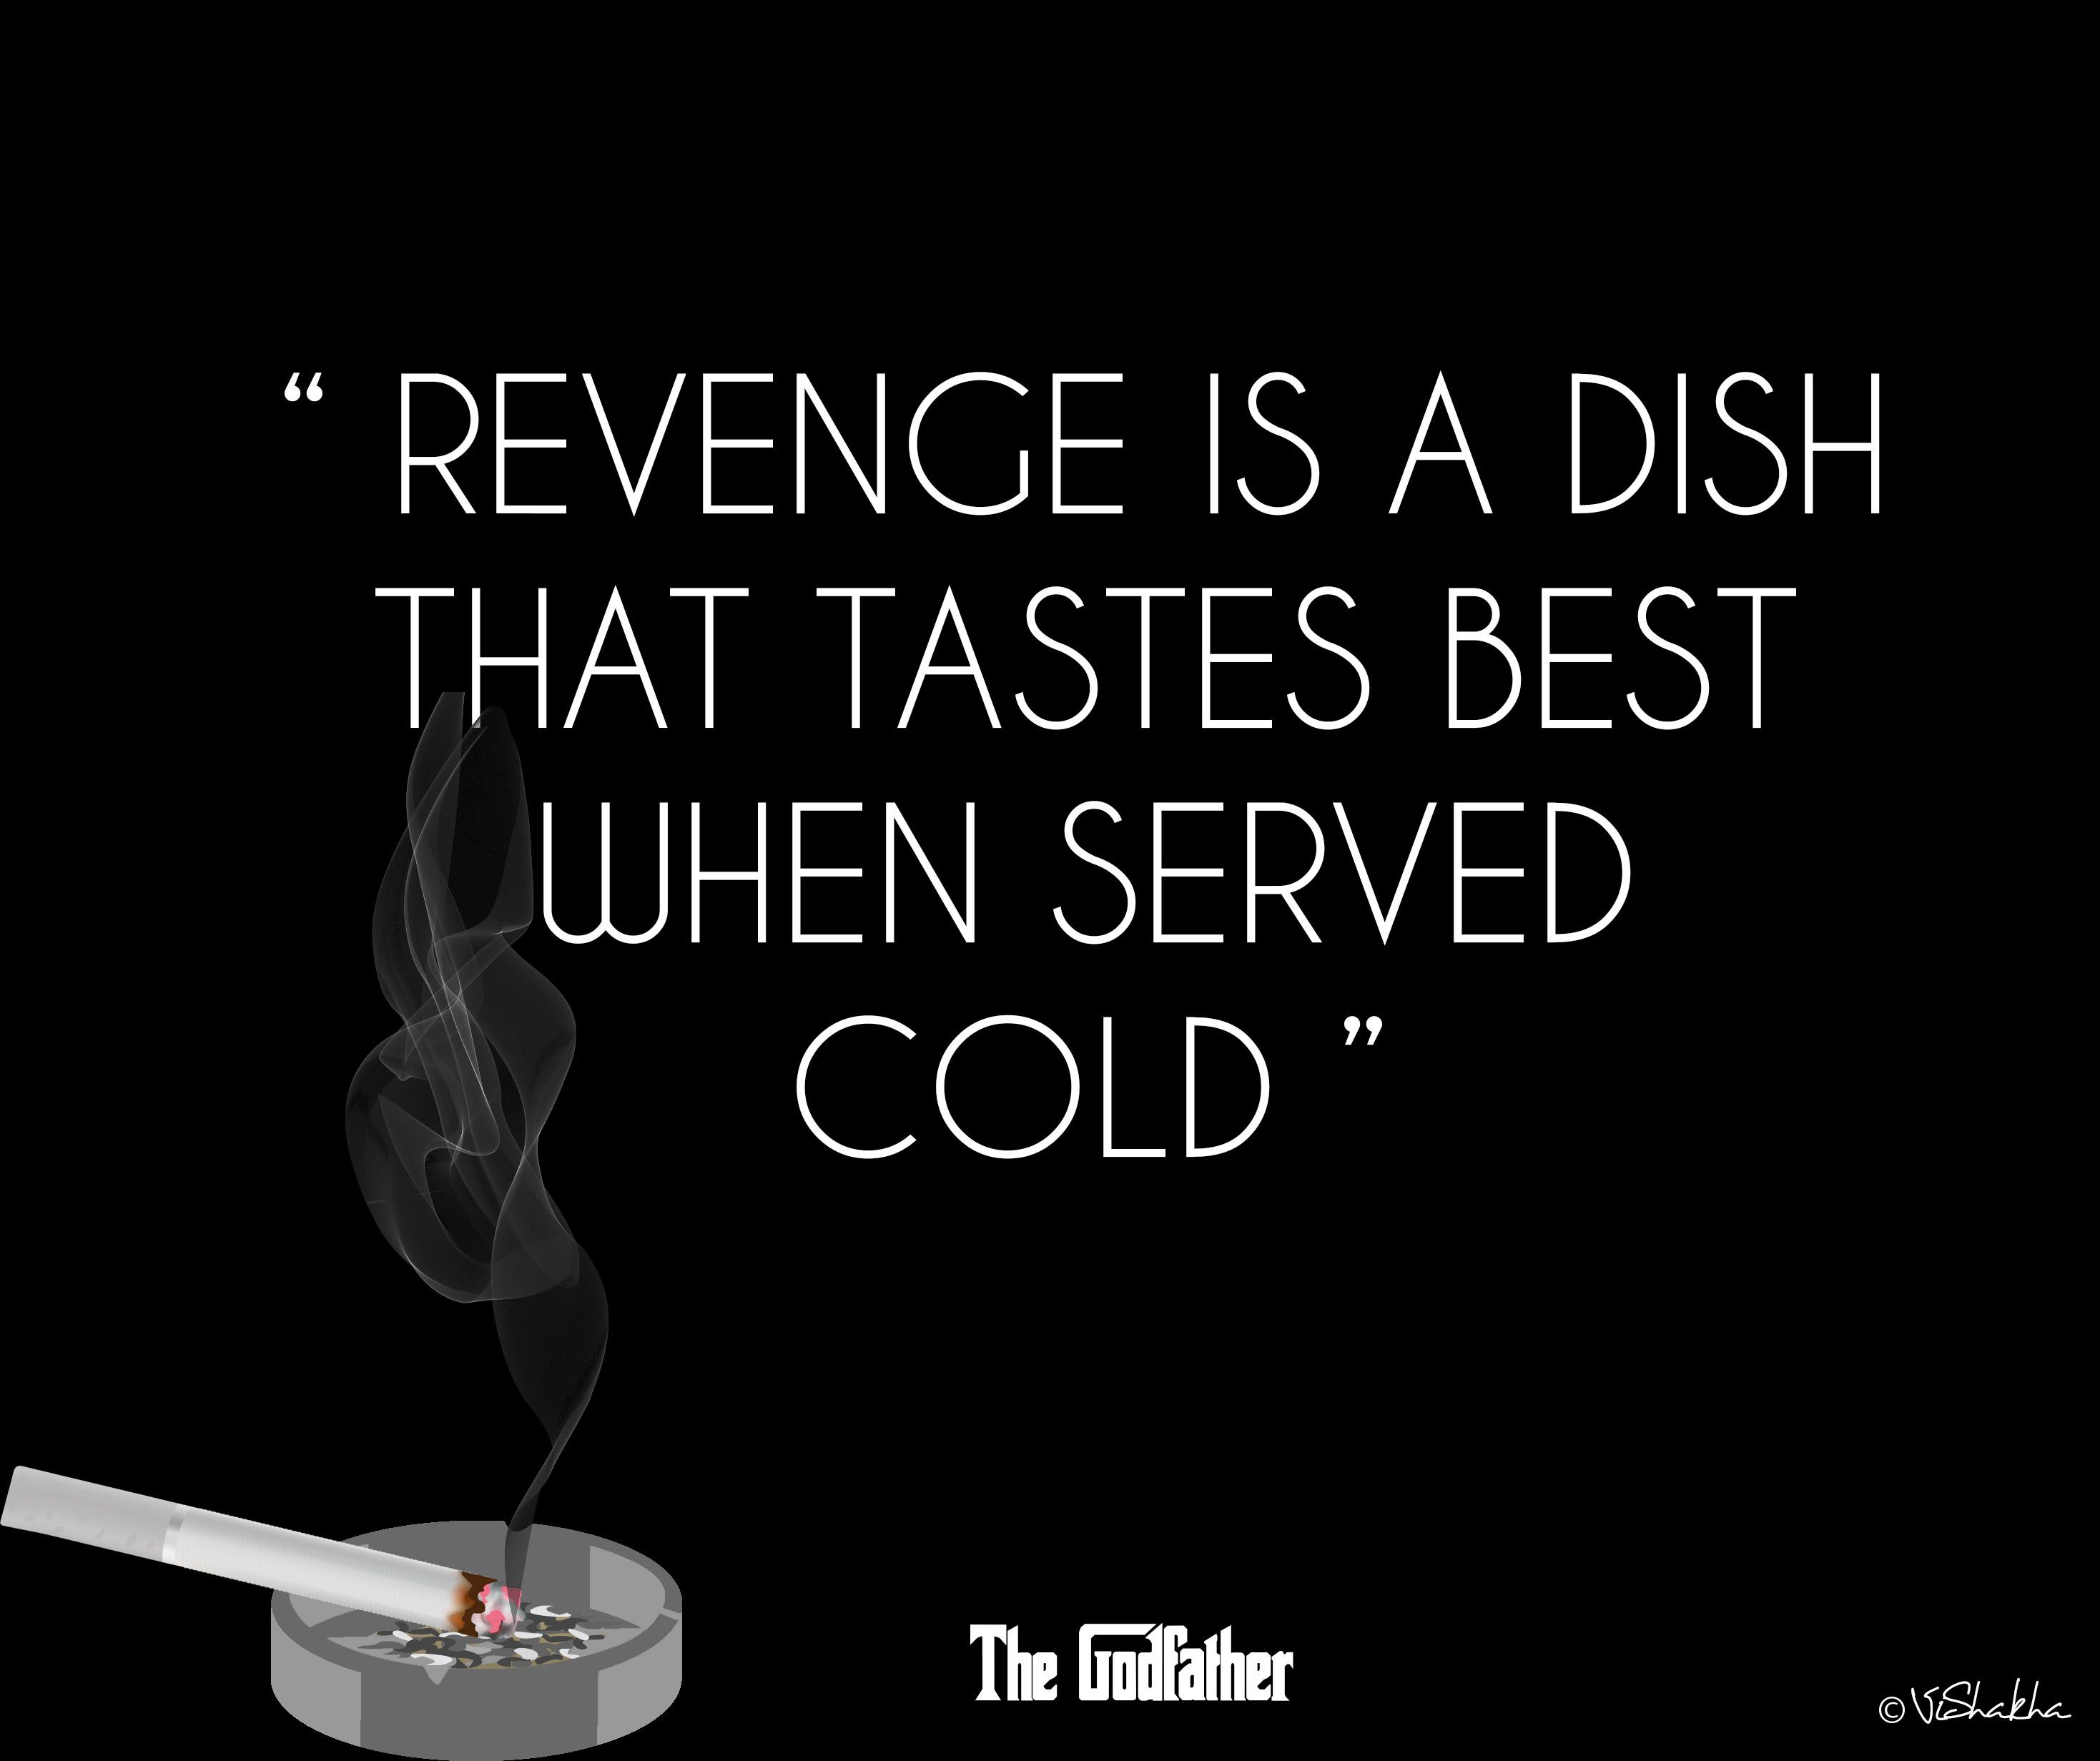 Gangster Quotes And Images: Quotes From The Godfather Trilogy